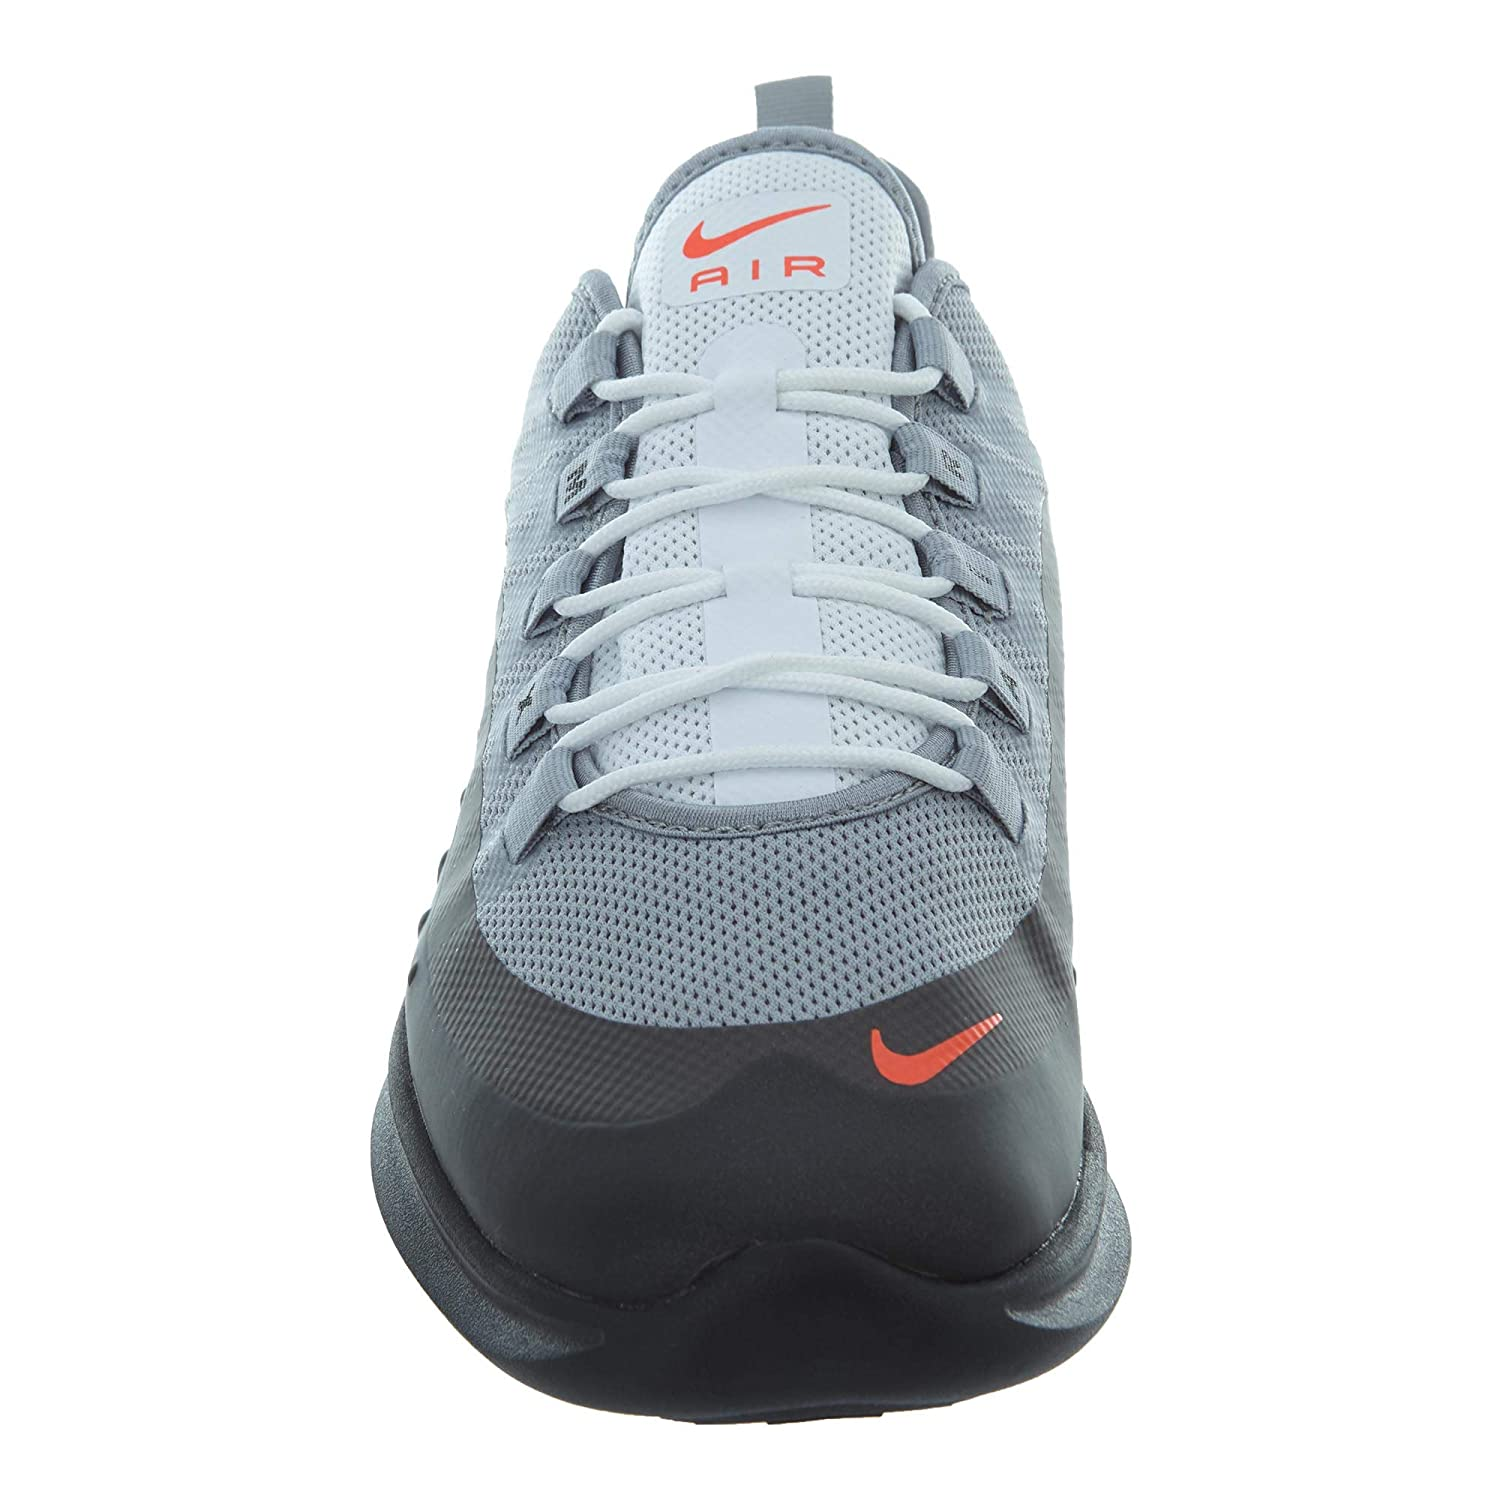 Nike Air MAX Axis - Wolf Grey/Total Crimson de Black de: Amazon.es: Deportes y aire libre